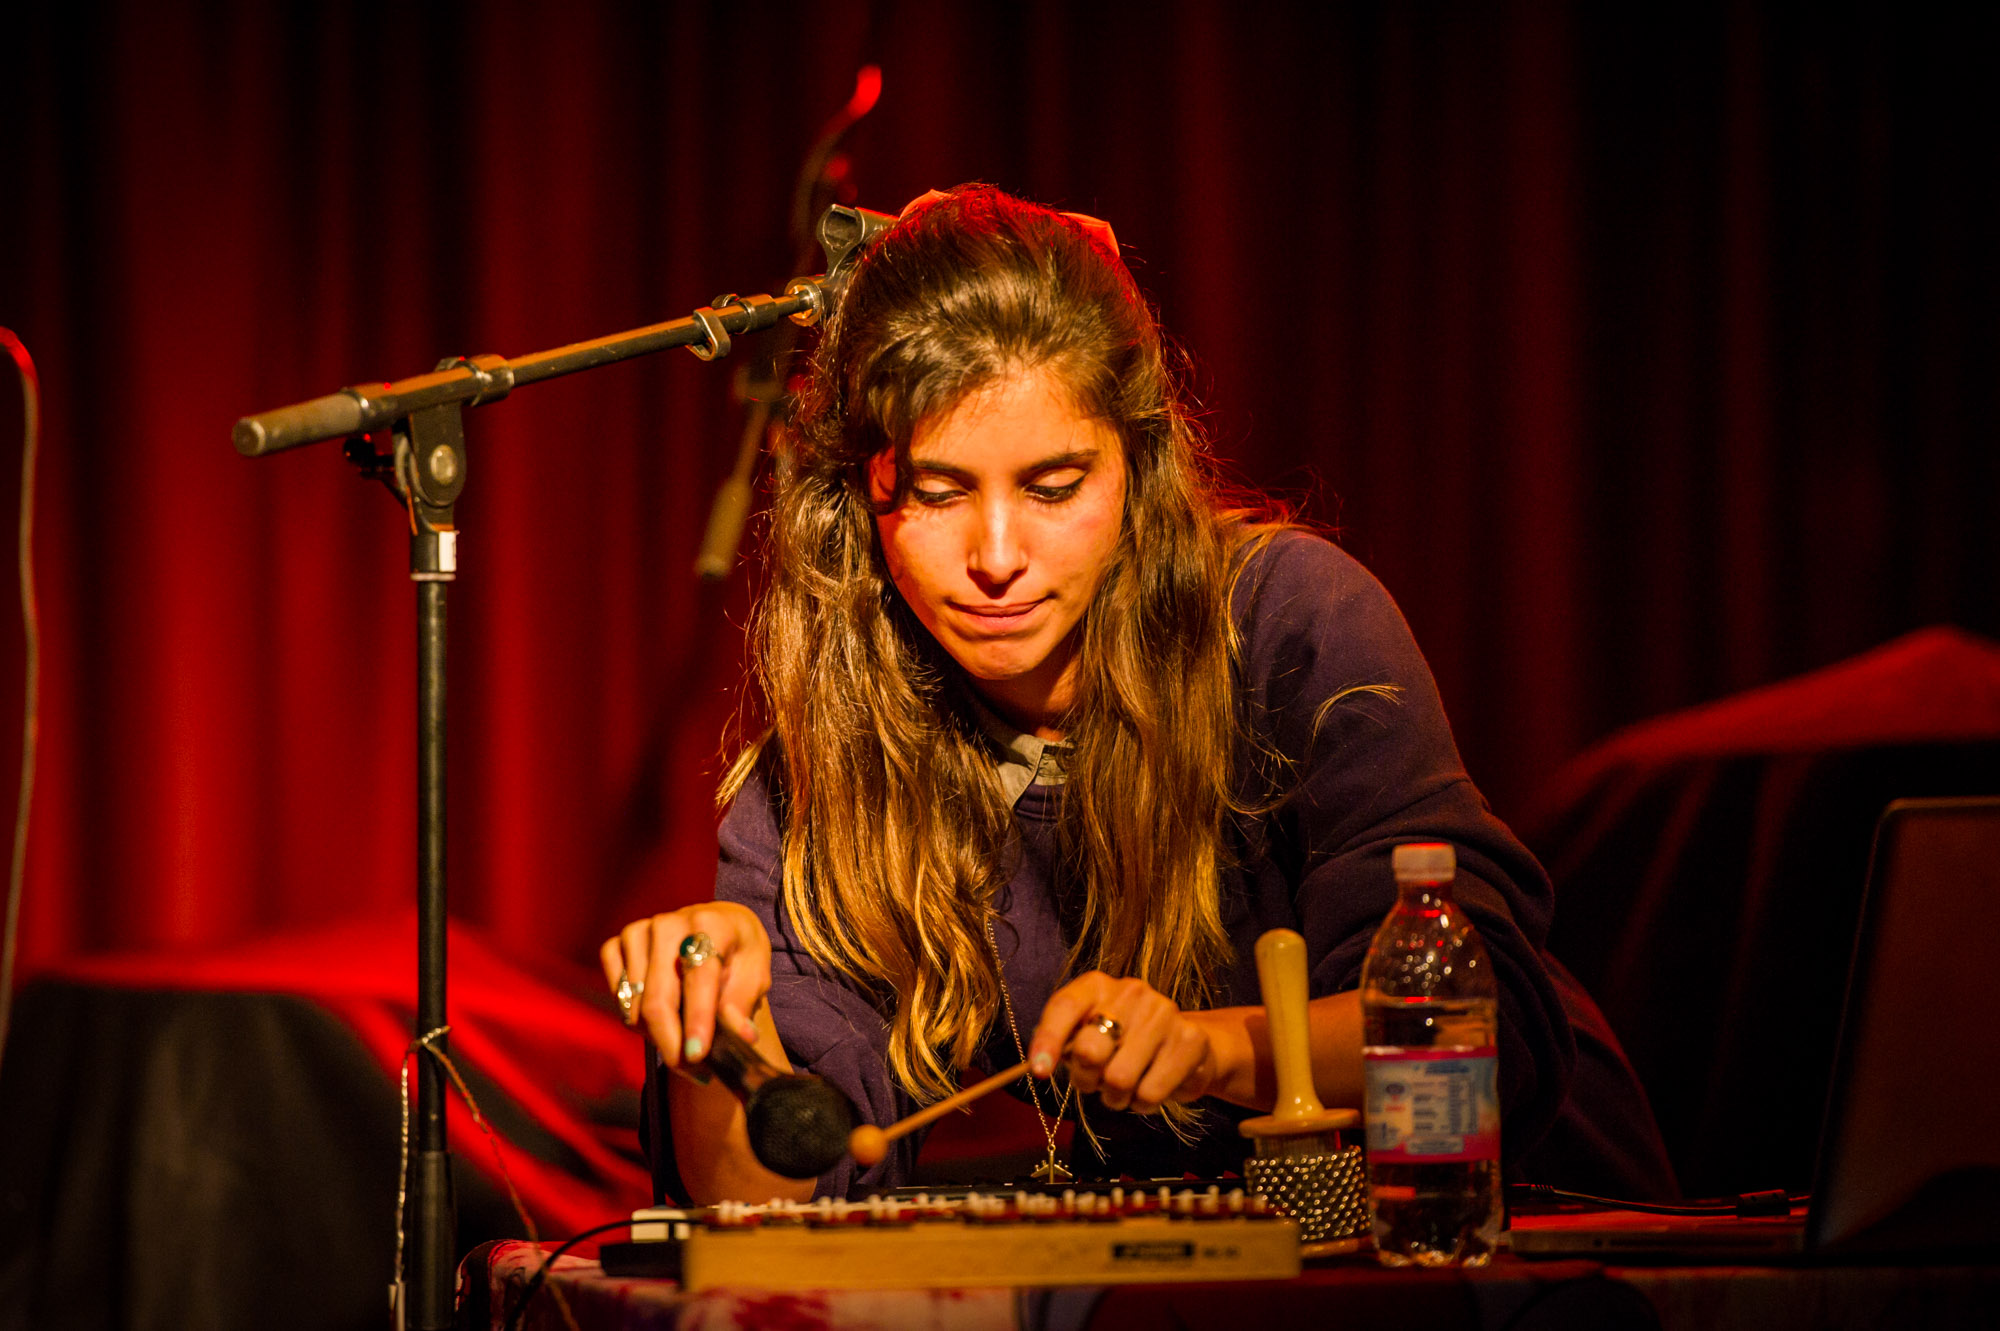 Nadina Carina at This is Tigerr Fest #1 in Papiersaal Zurich